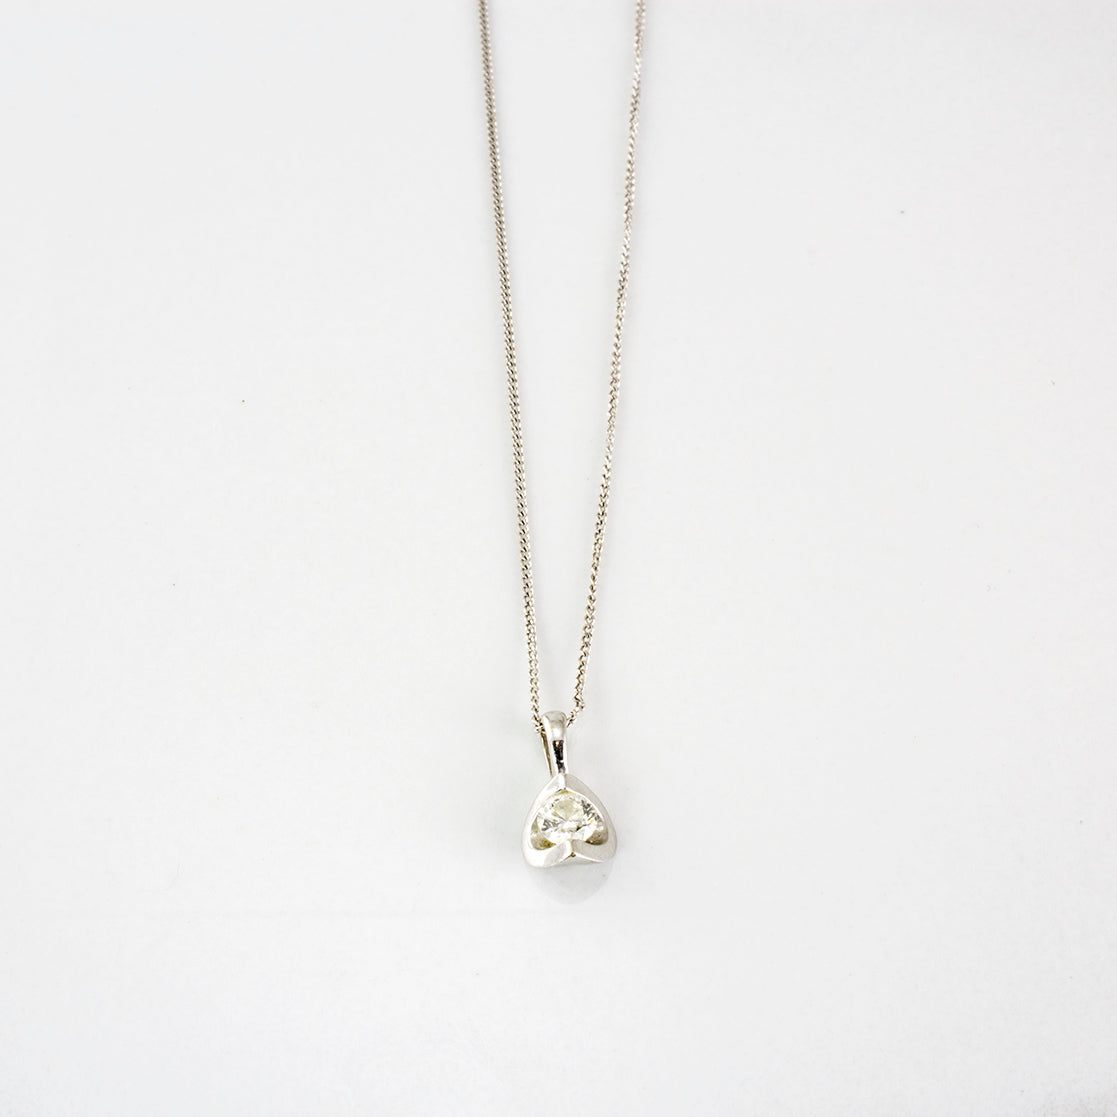 Half Moon Set Canadian Diamond Necklace | 0.15 ctw | SZ 20"